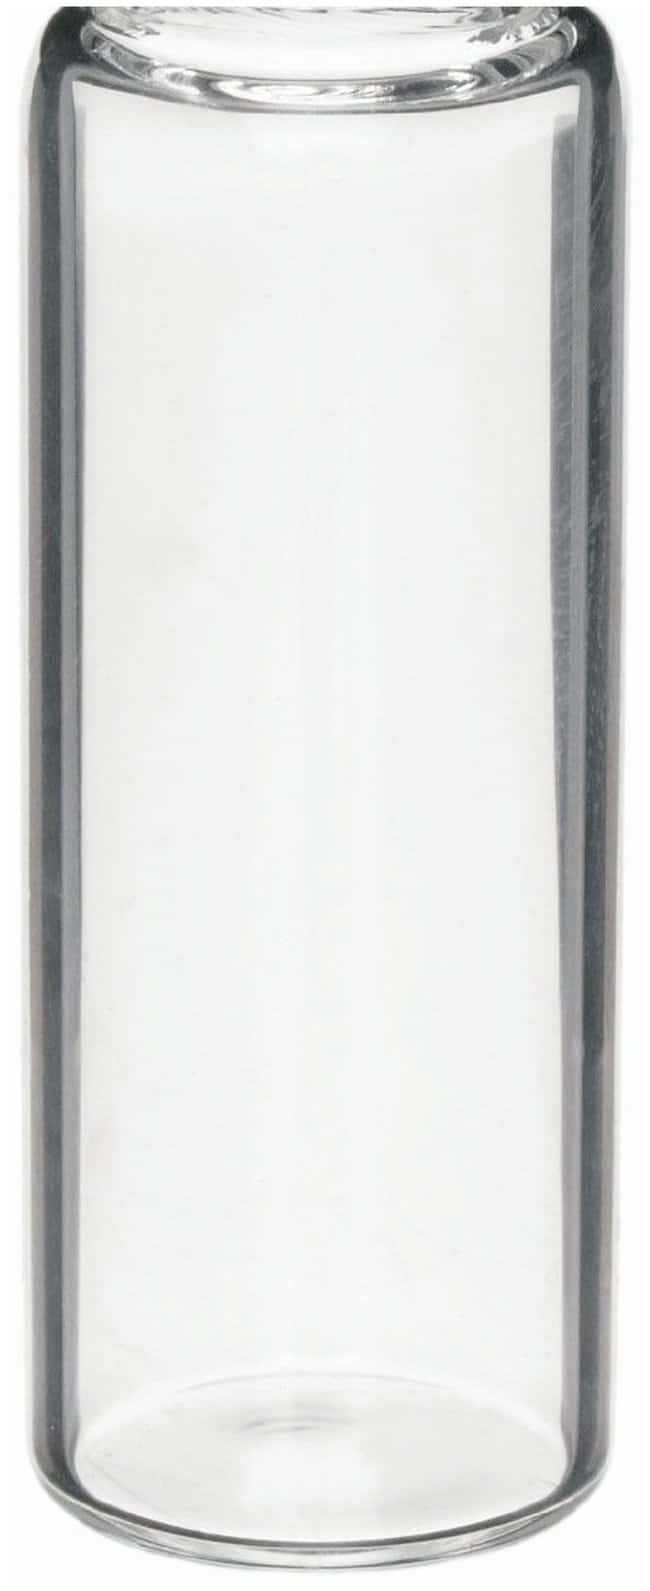 DWK Life Sciences Kimble Glass Screw-Thread Sample Vials without Closure